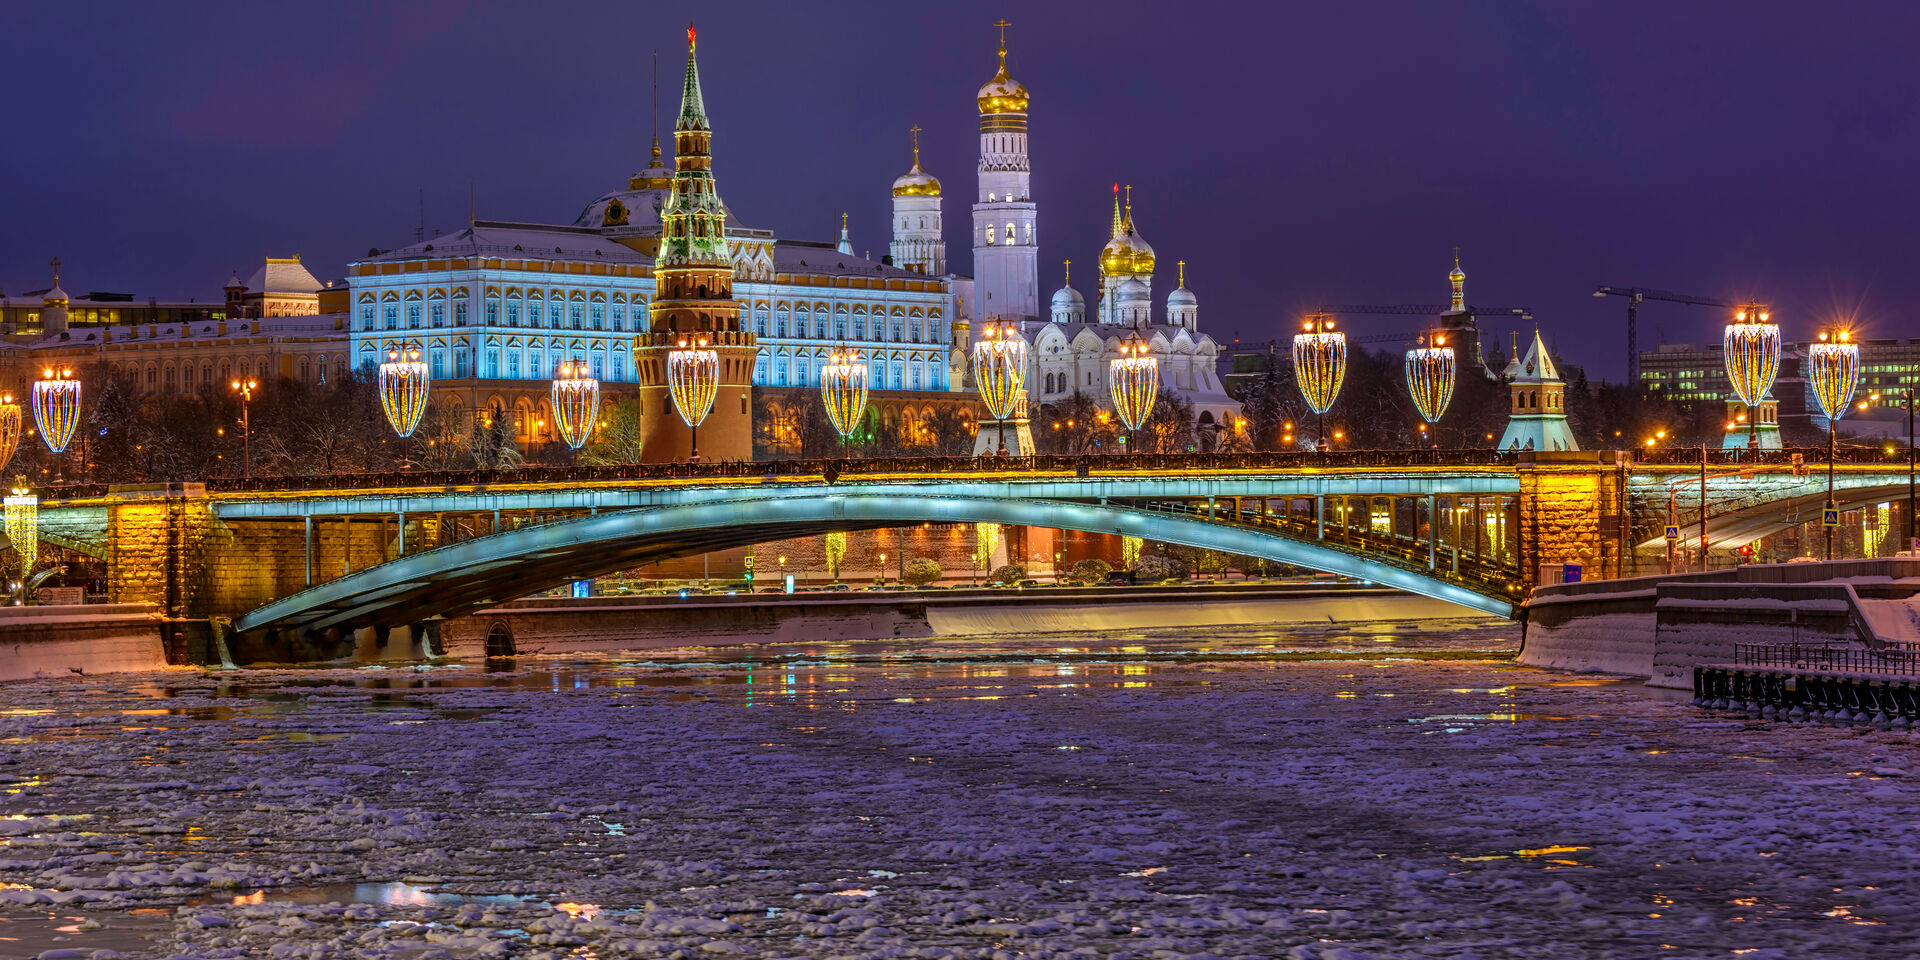 CITY-MOW-1 moscou